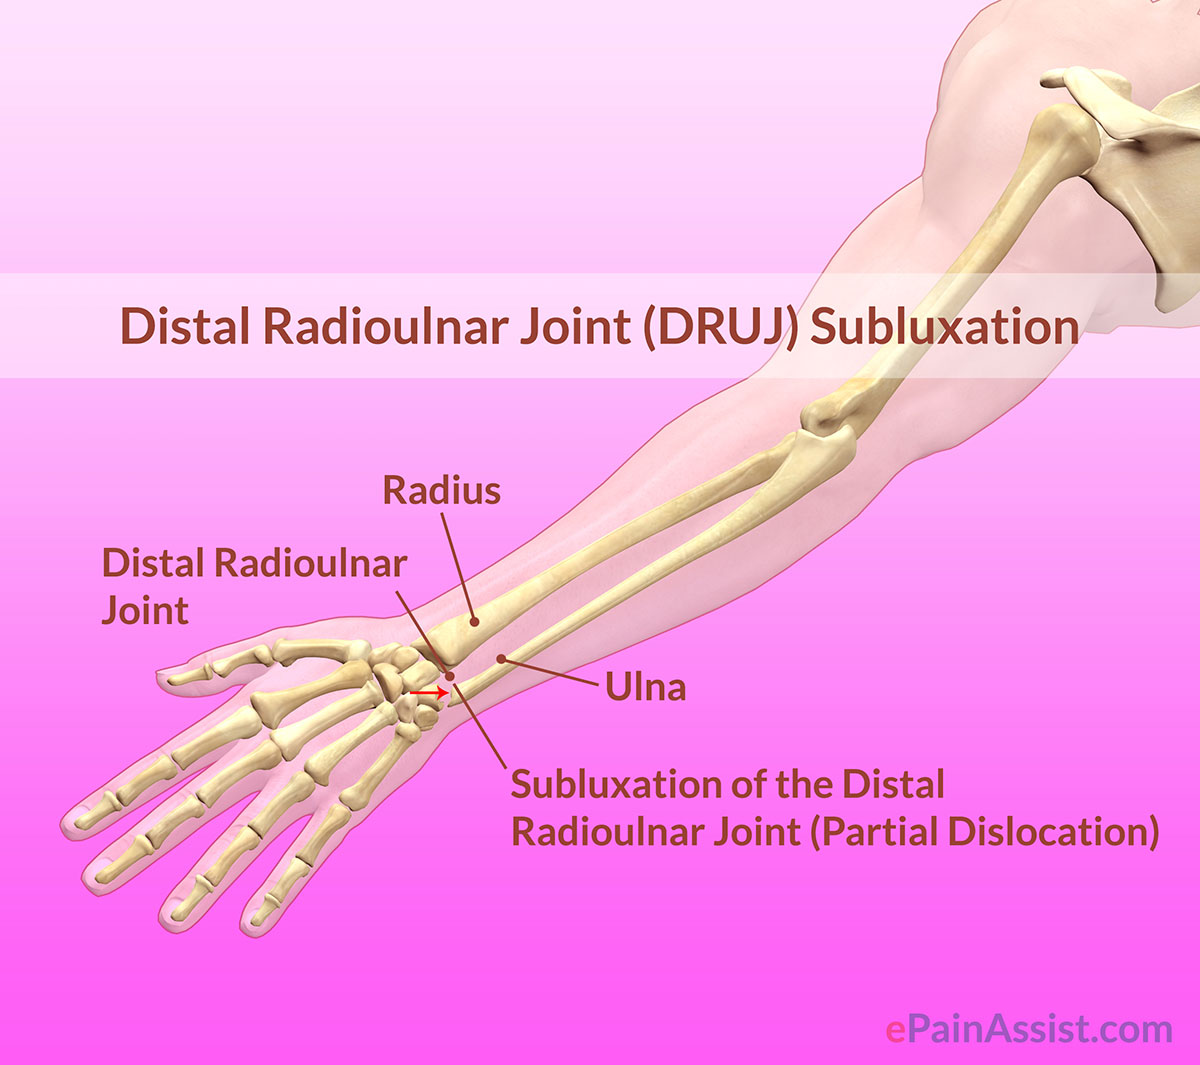 Distal Radioulnar Joint (DRUJ) Subluxation